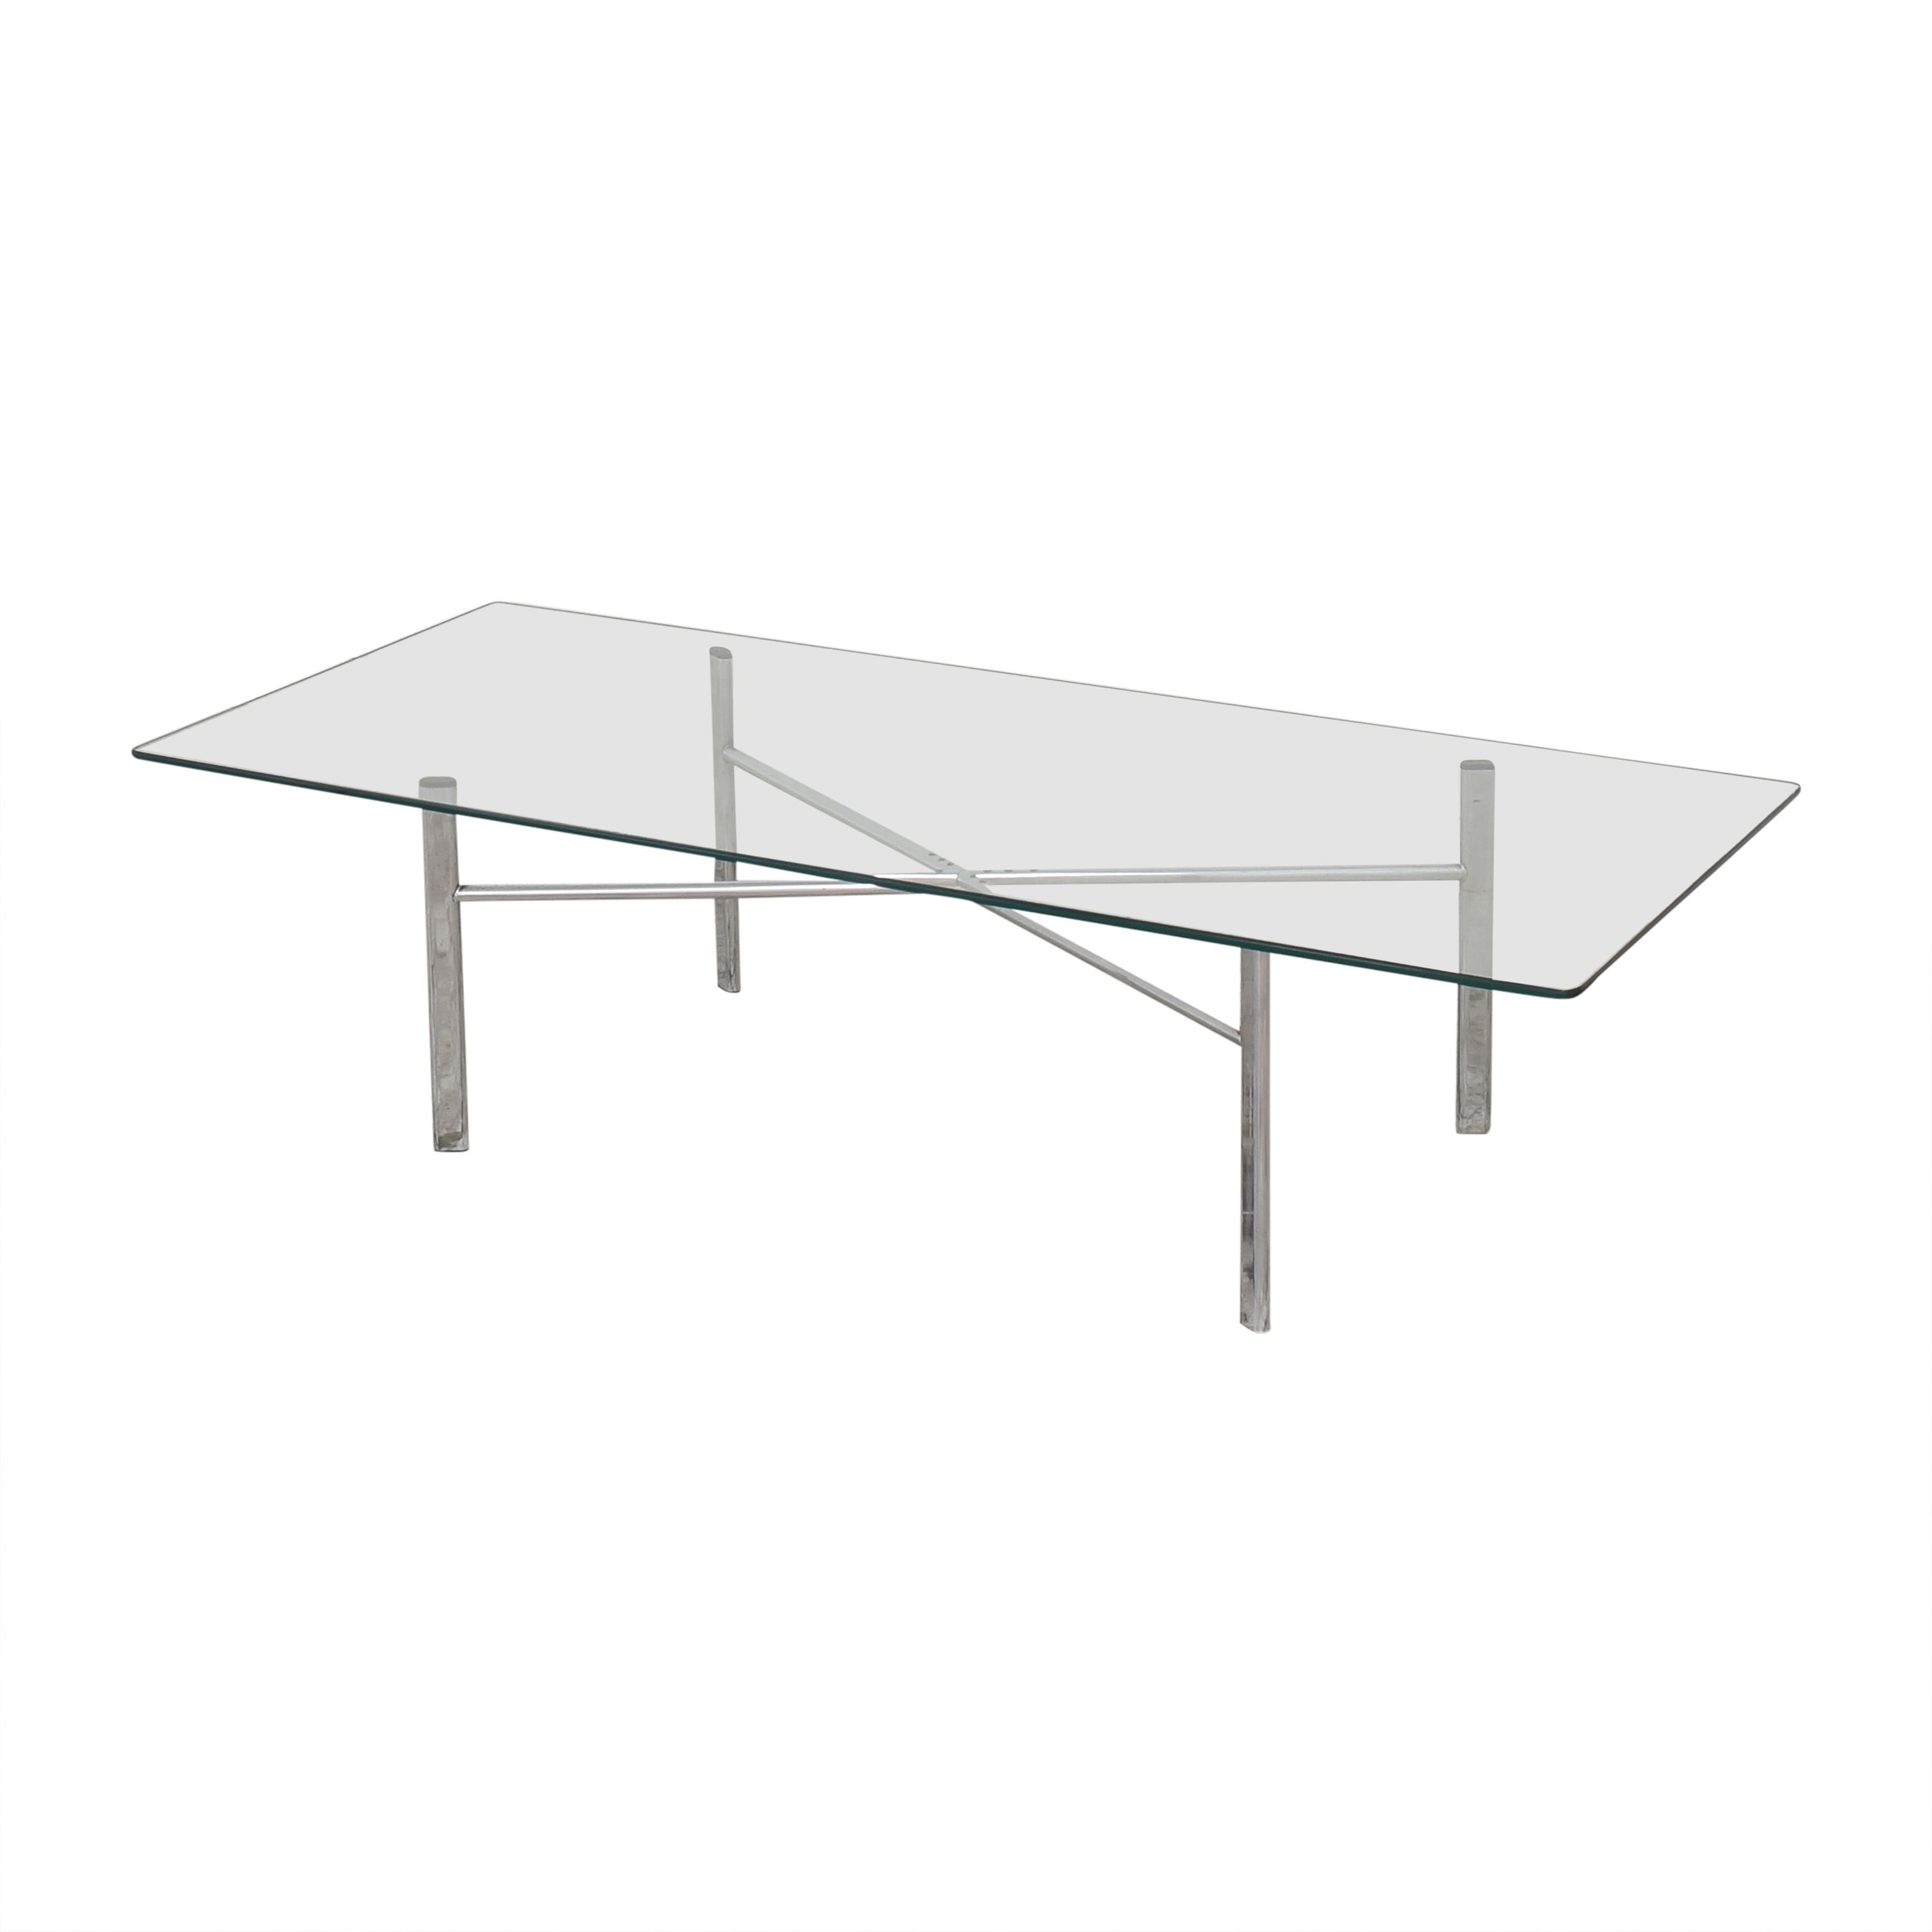 Custom Modern Coffee Table with Transparent Surface / Tables